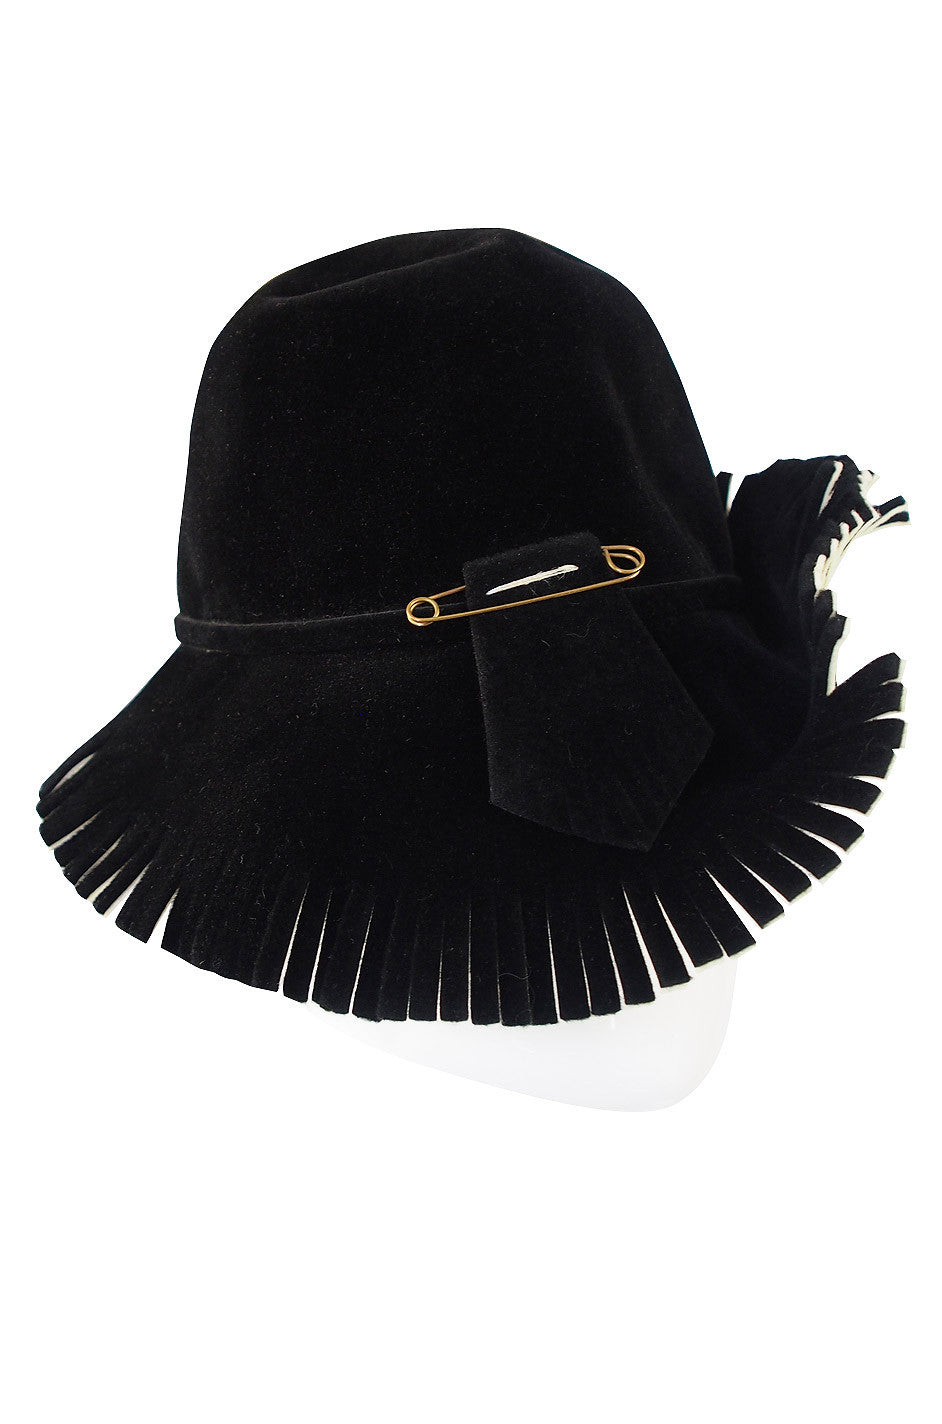 65dd67a7 1970s Fringed Yves Saint Laurent Hat 1970s Fringed Yves Saint Laurent Hat  ...